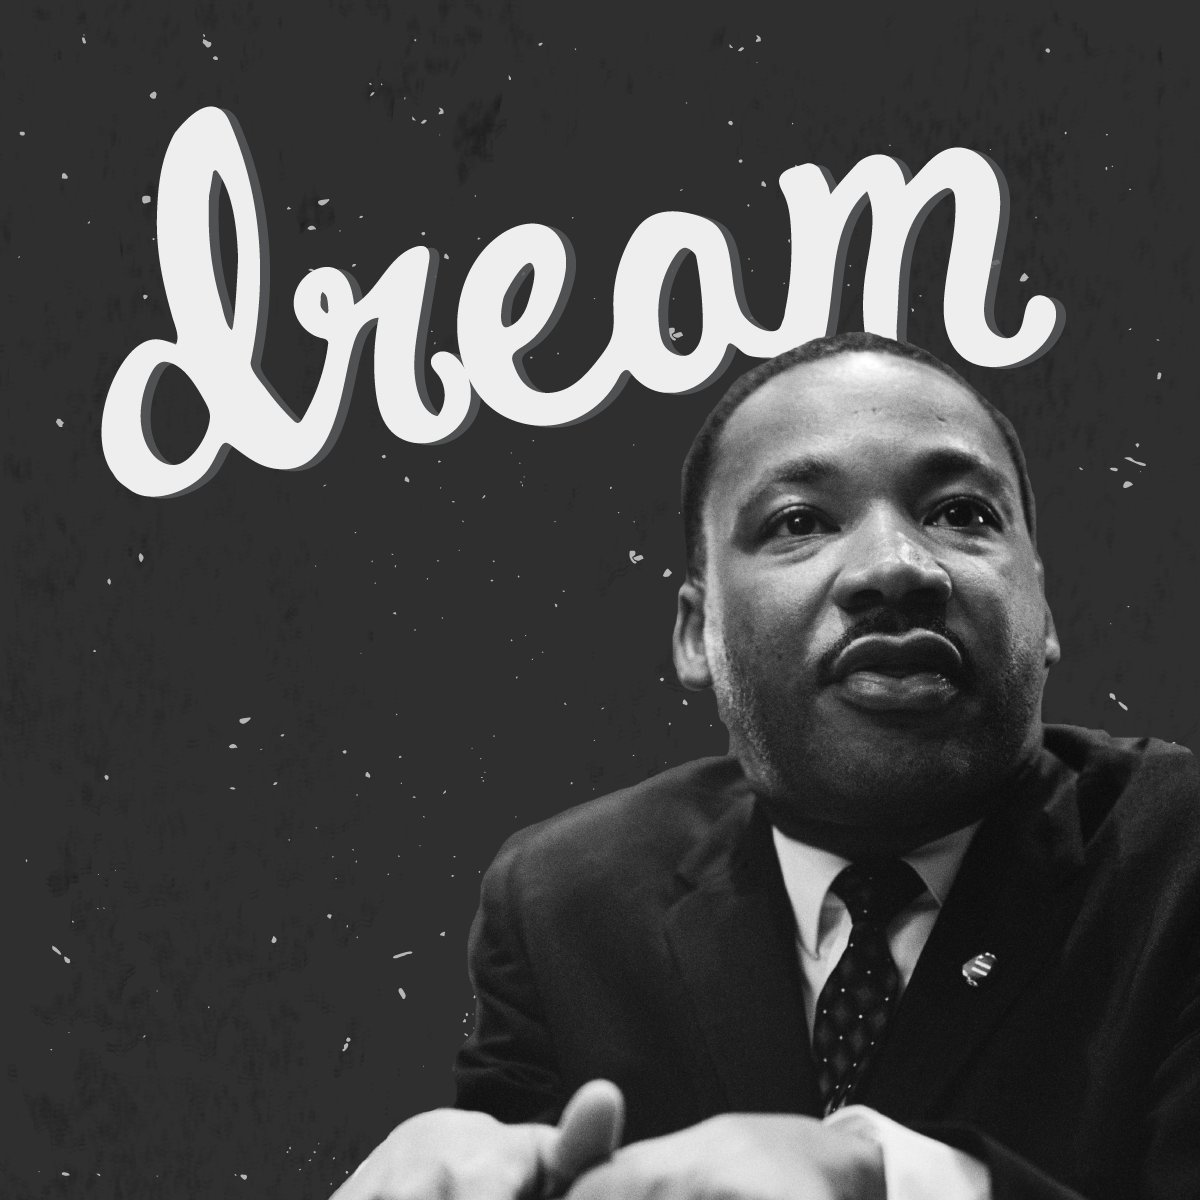 Dr. Martin Luther King Jr. dedicated his life to the idea that racial and economic justice are foundational to our democracy. Today, we honor his courageous vision and radical action — and commit to furthering his dream by continuing the fight for justice. #MLKday